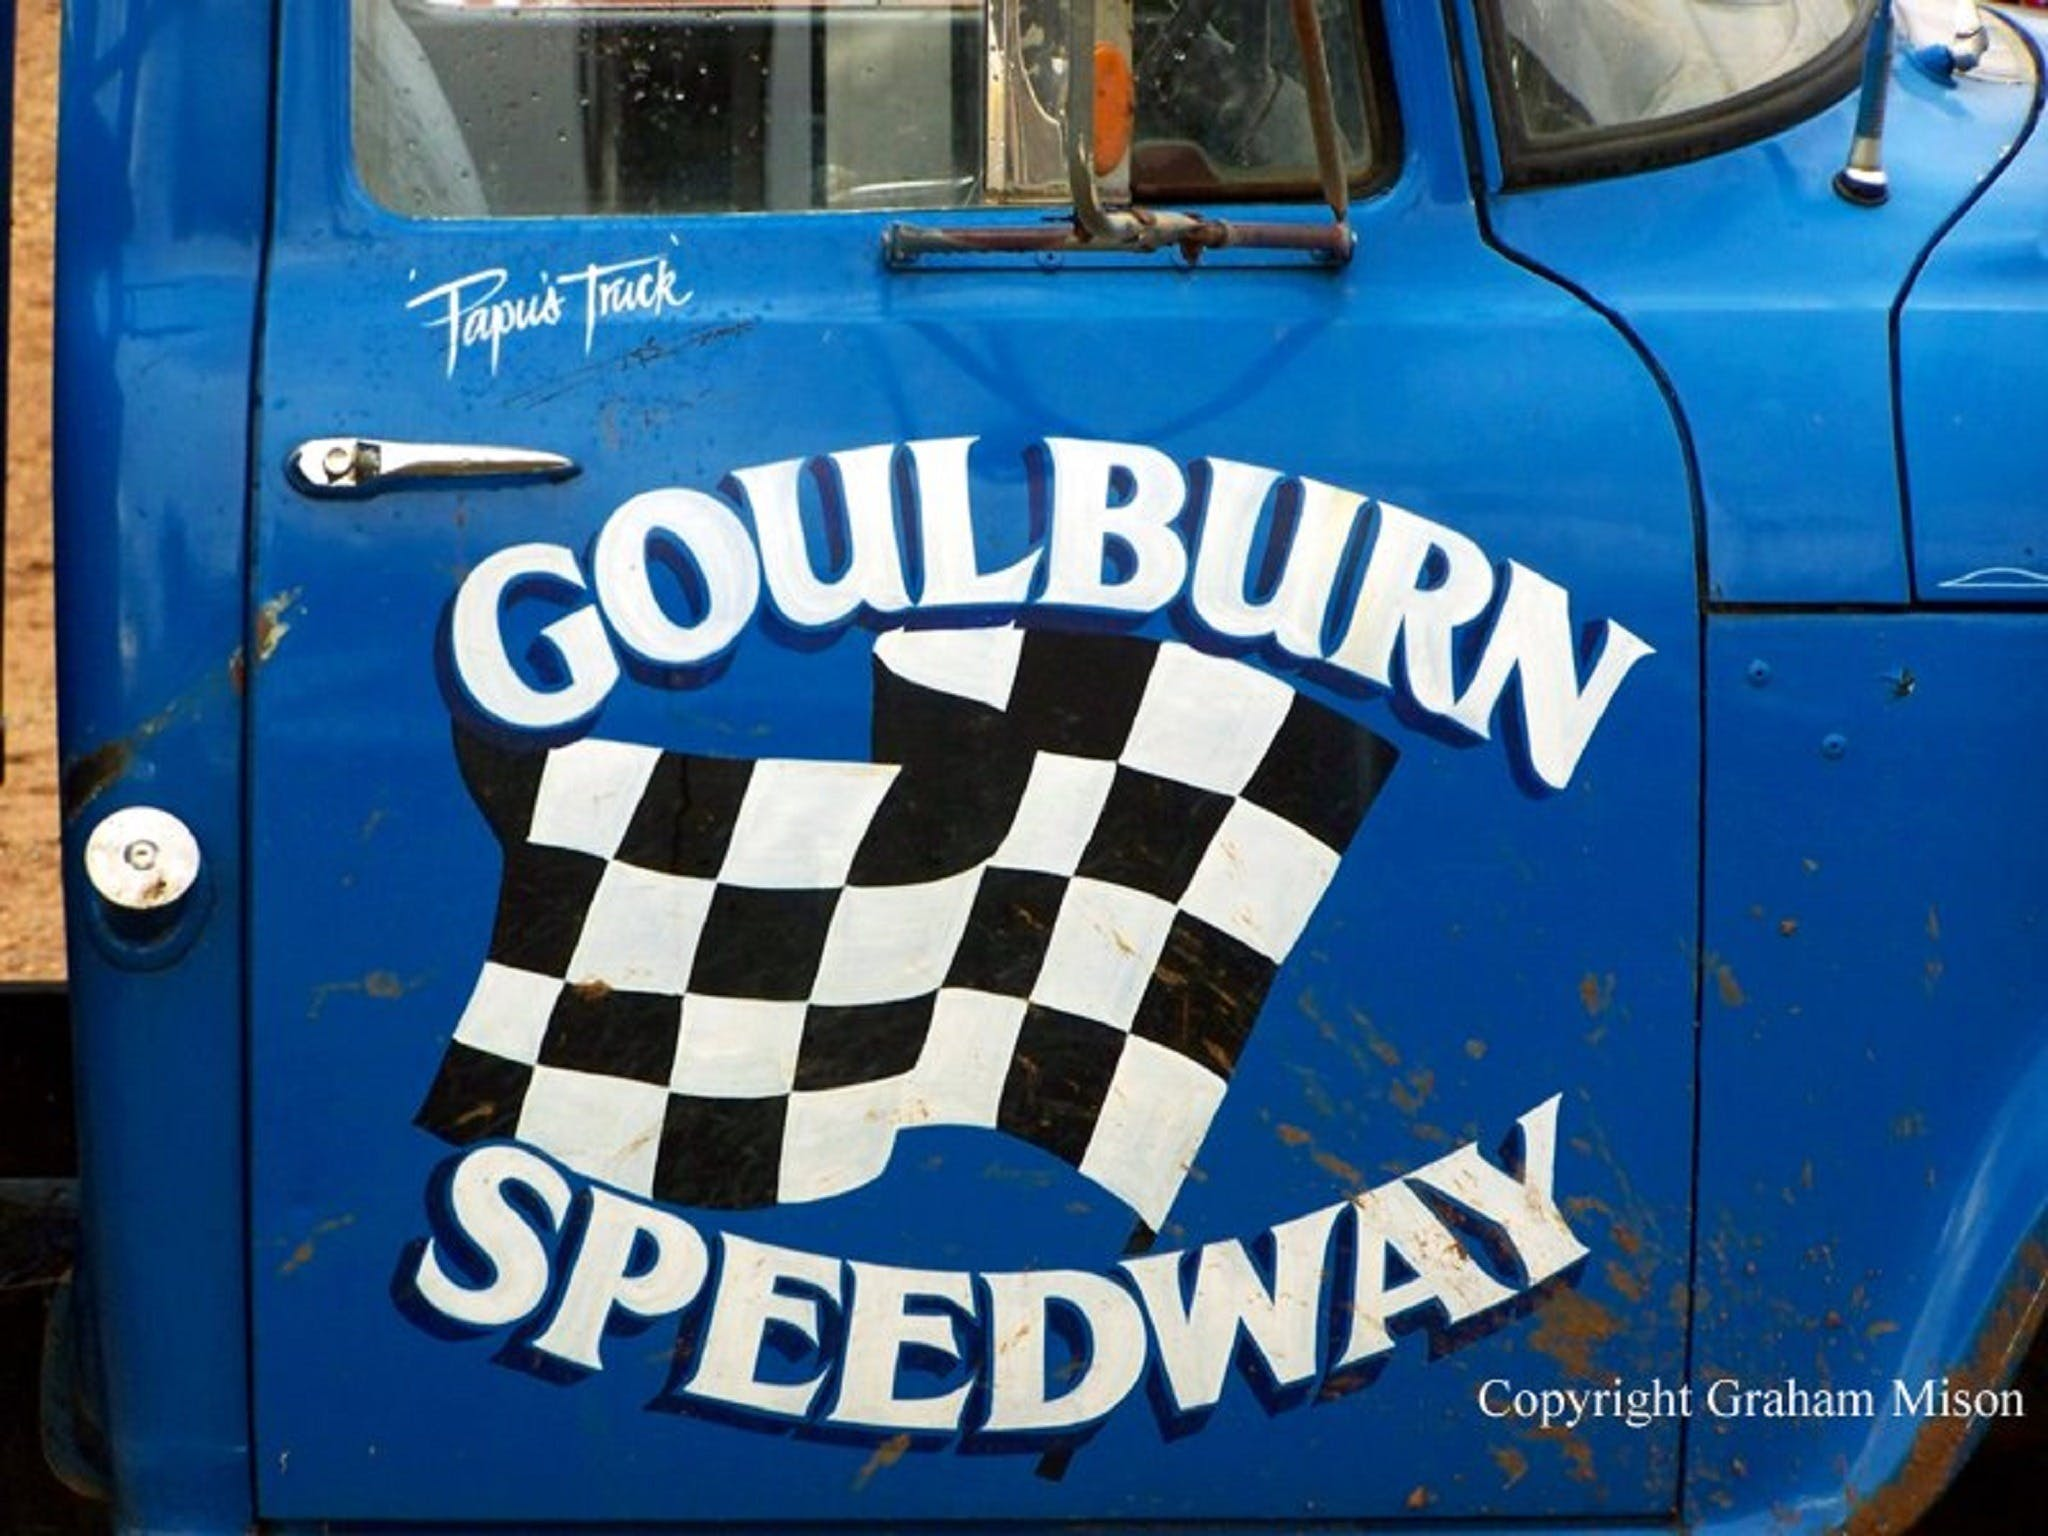 50 years of racing at Goulburn Speedway - Tourism Gold Coast